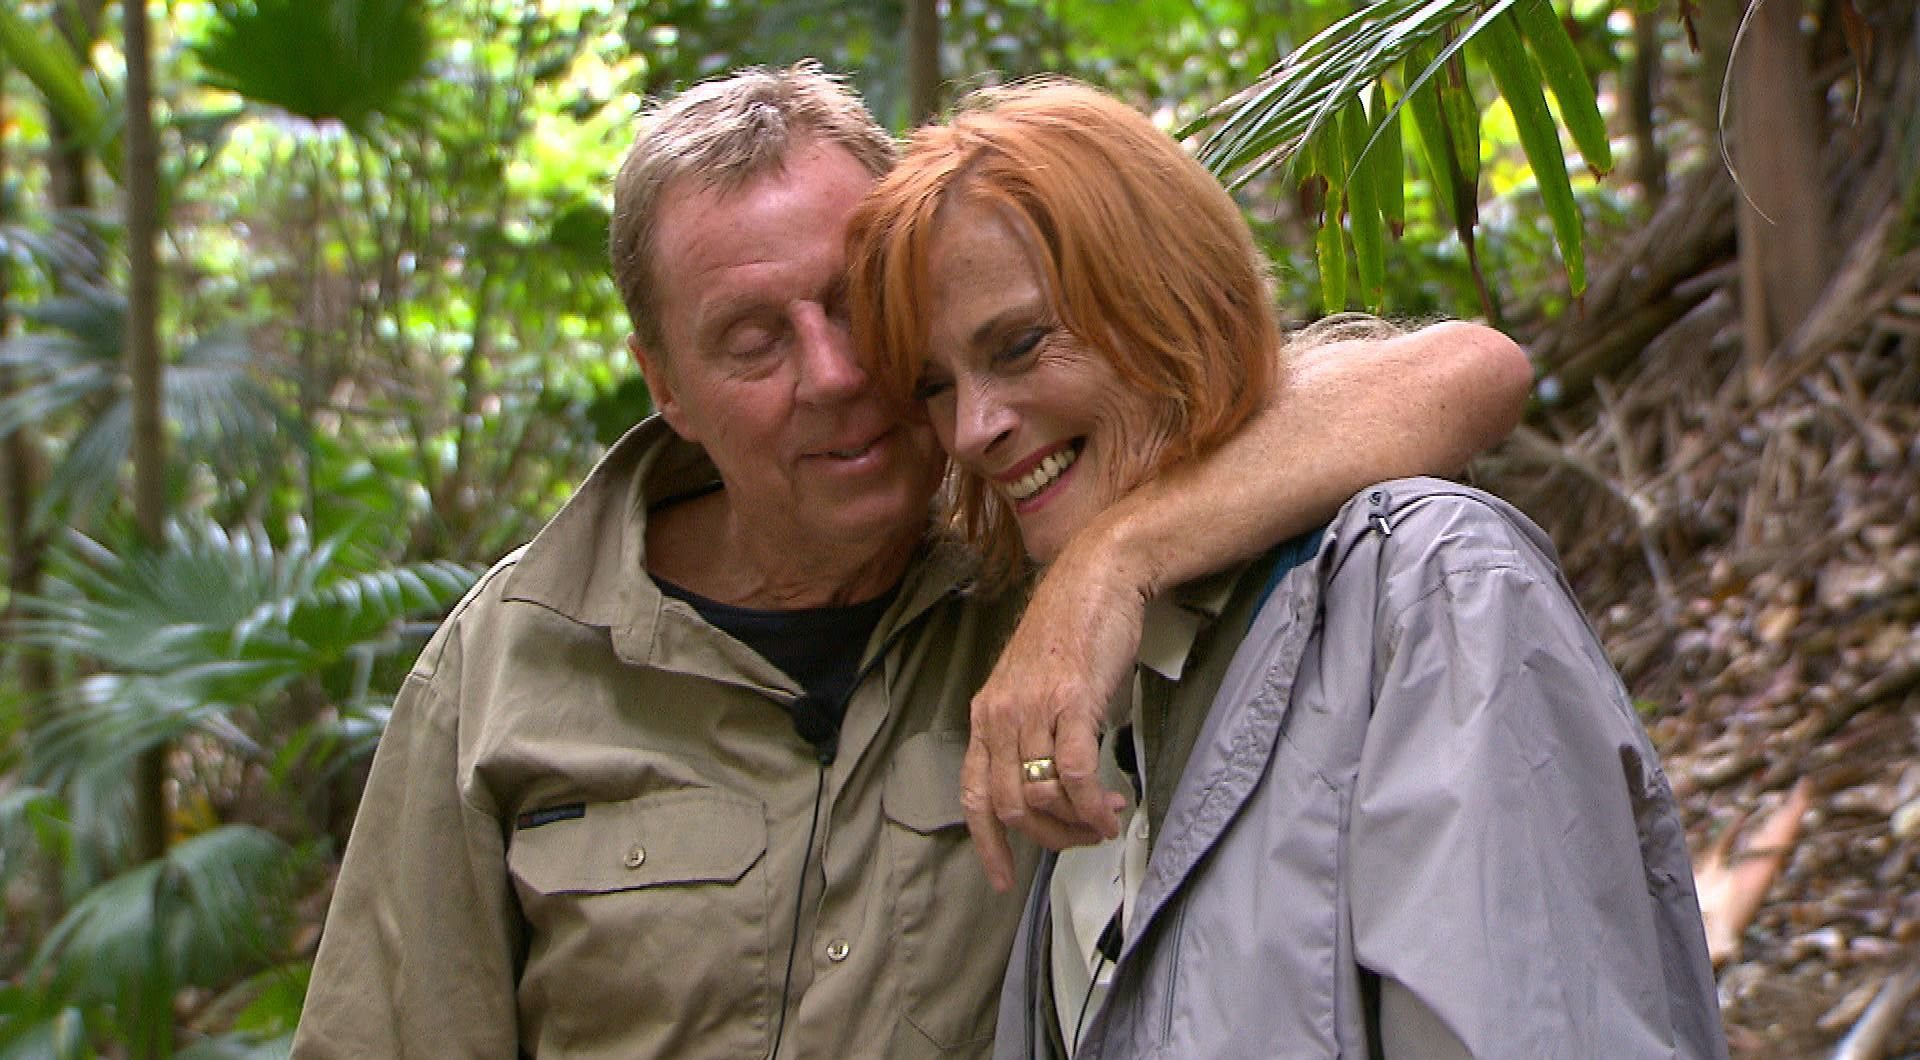 STRICT EMBARGO - NOT TO BE USED BEFORE 22:30 GMT, 07 DEC 2018 - EDITORIAL USE ONLY Mandatory Credit: Photo by REX (10018384ia) Harry Meets Sandra - Harry Redknapp and Sandra Redknapp 'I'm a Celebrity... Get Me Out of Here!' TV Show, Series 18, Australia - 07 Dec 2018